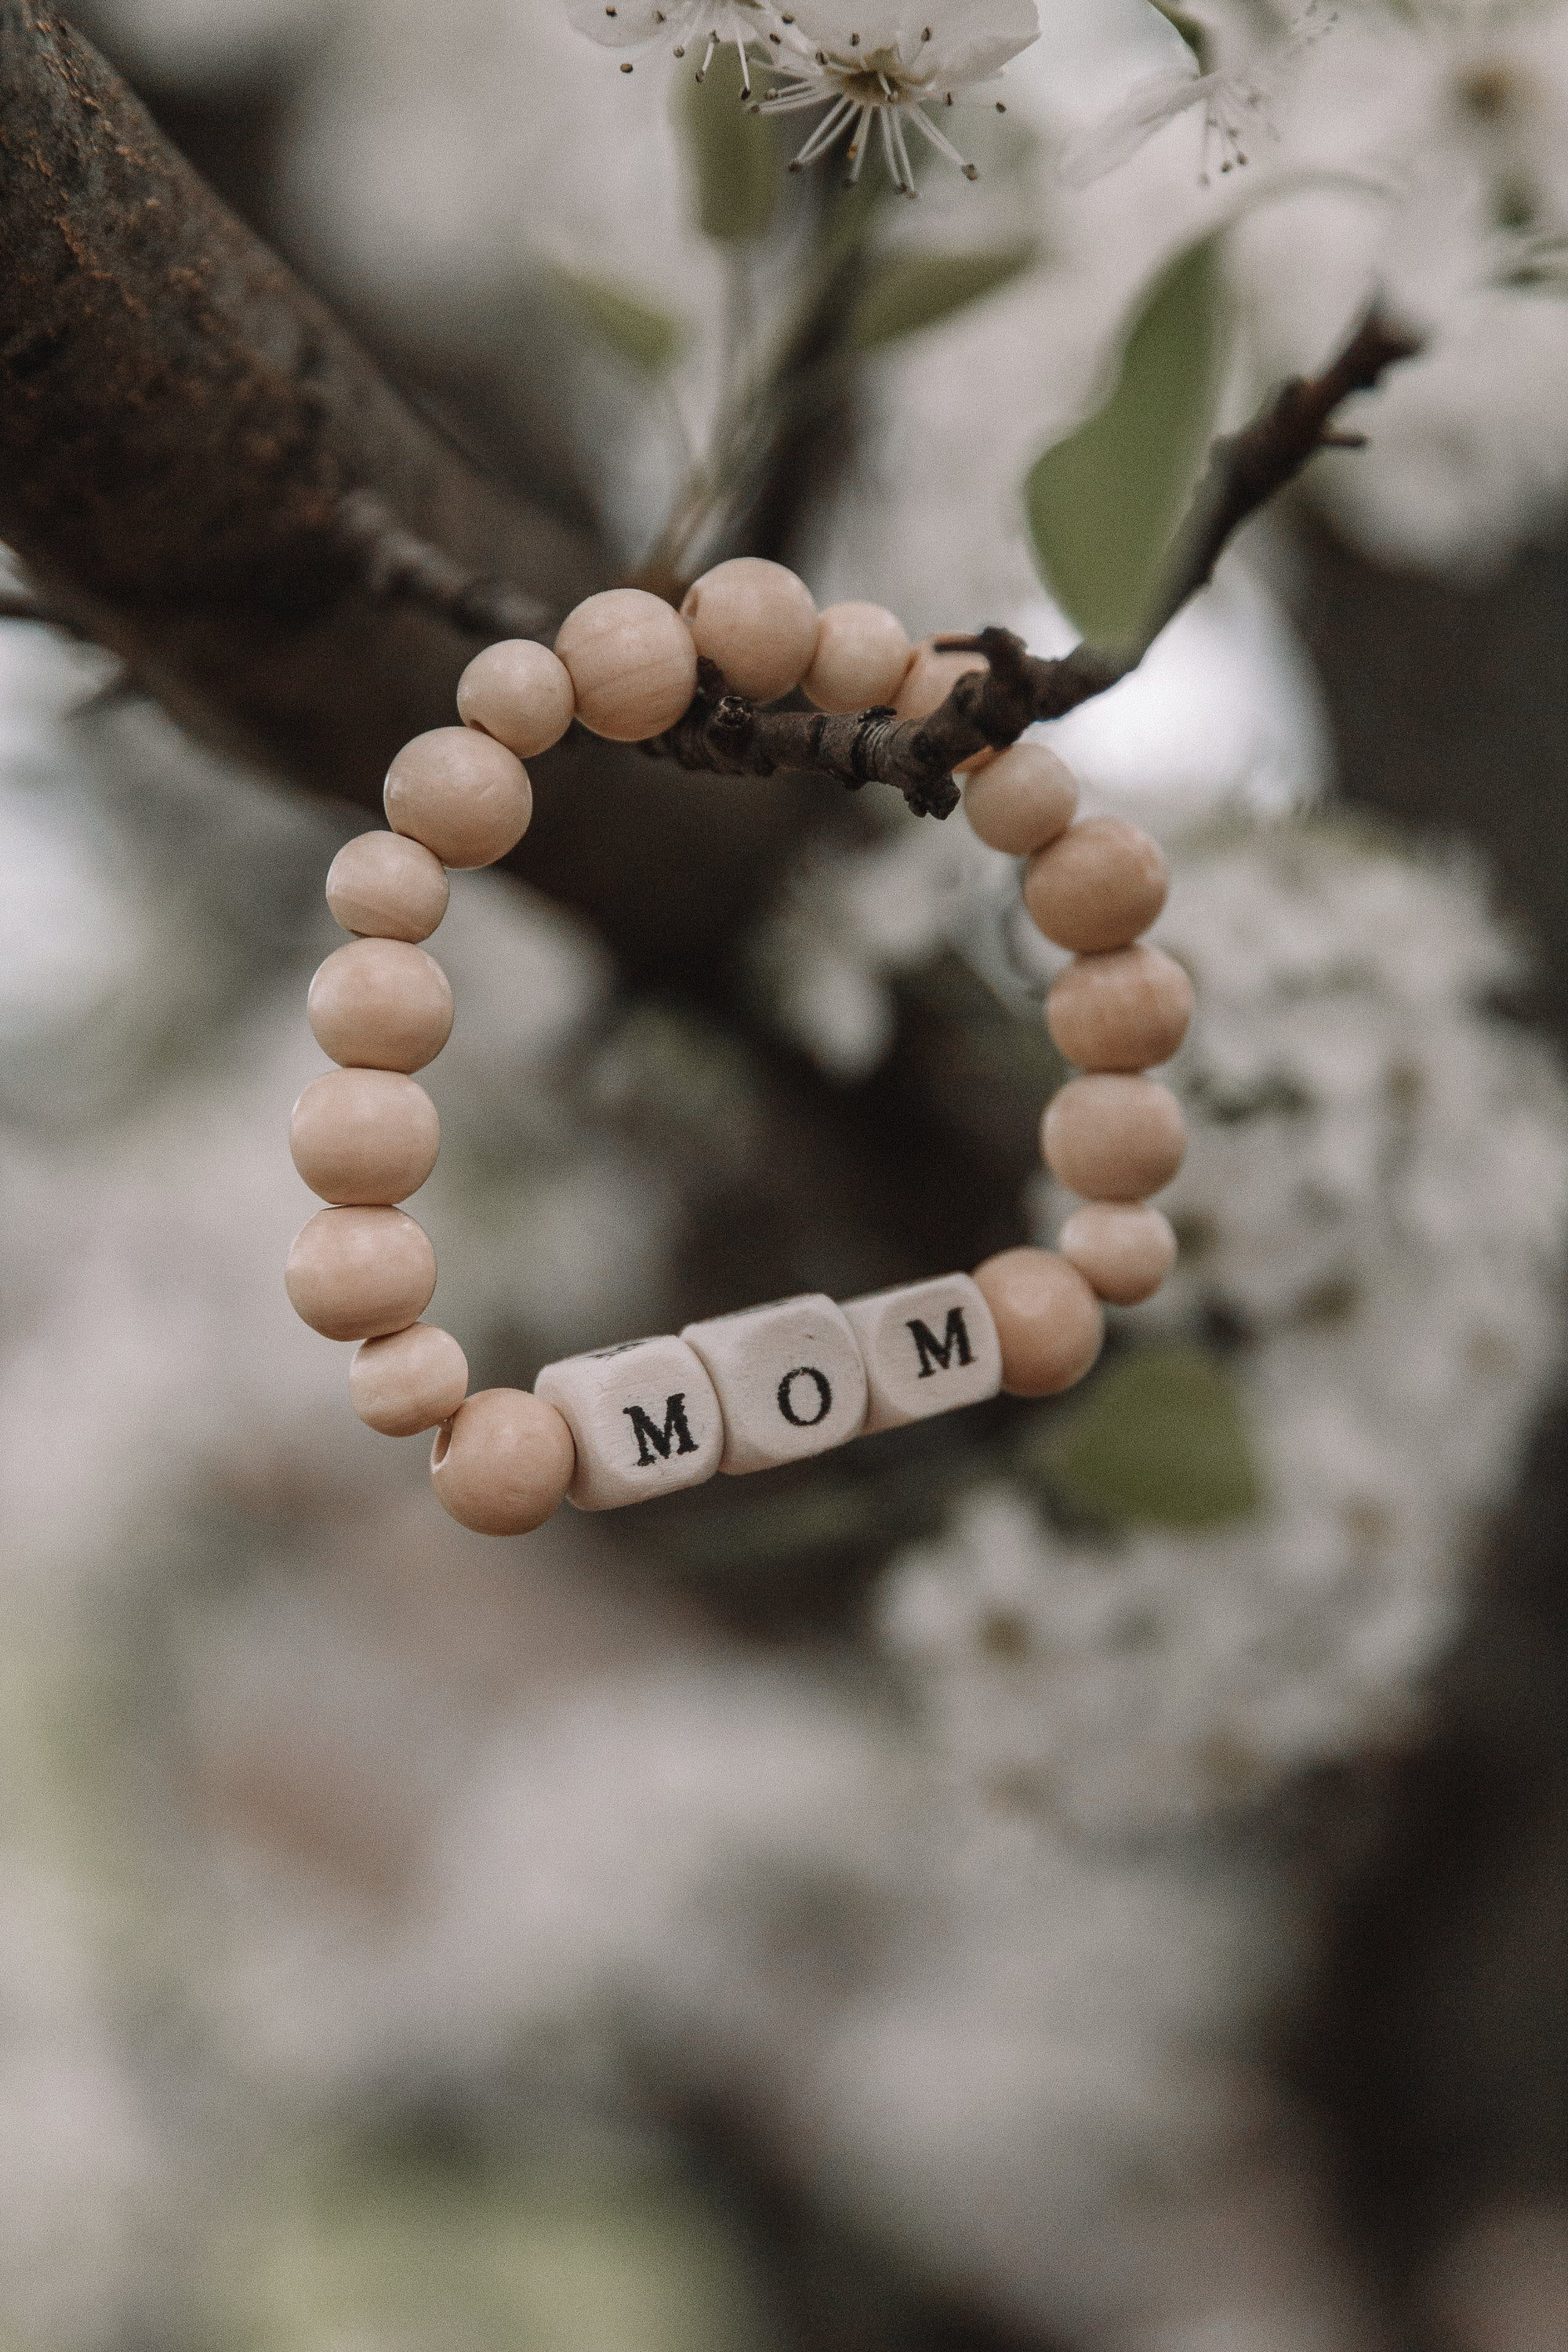 Mom Wood Bead Bracelet